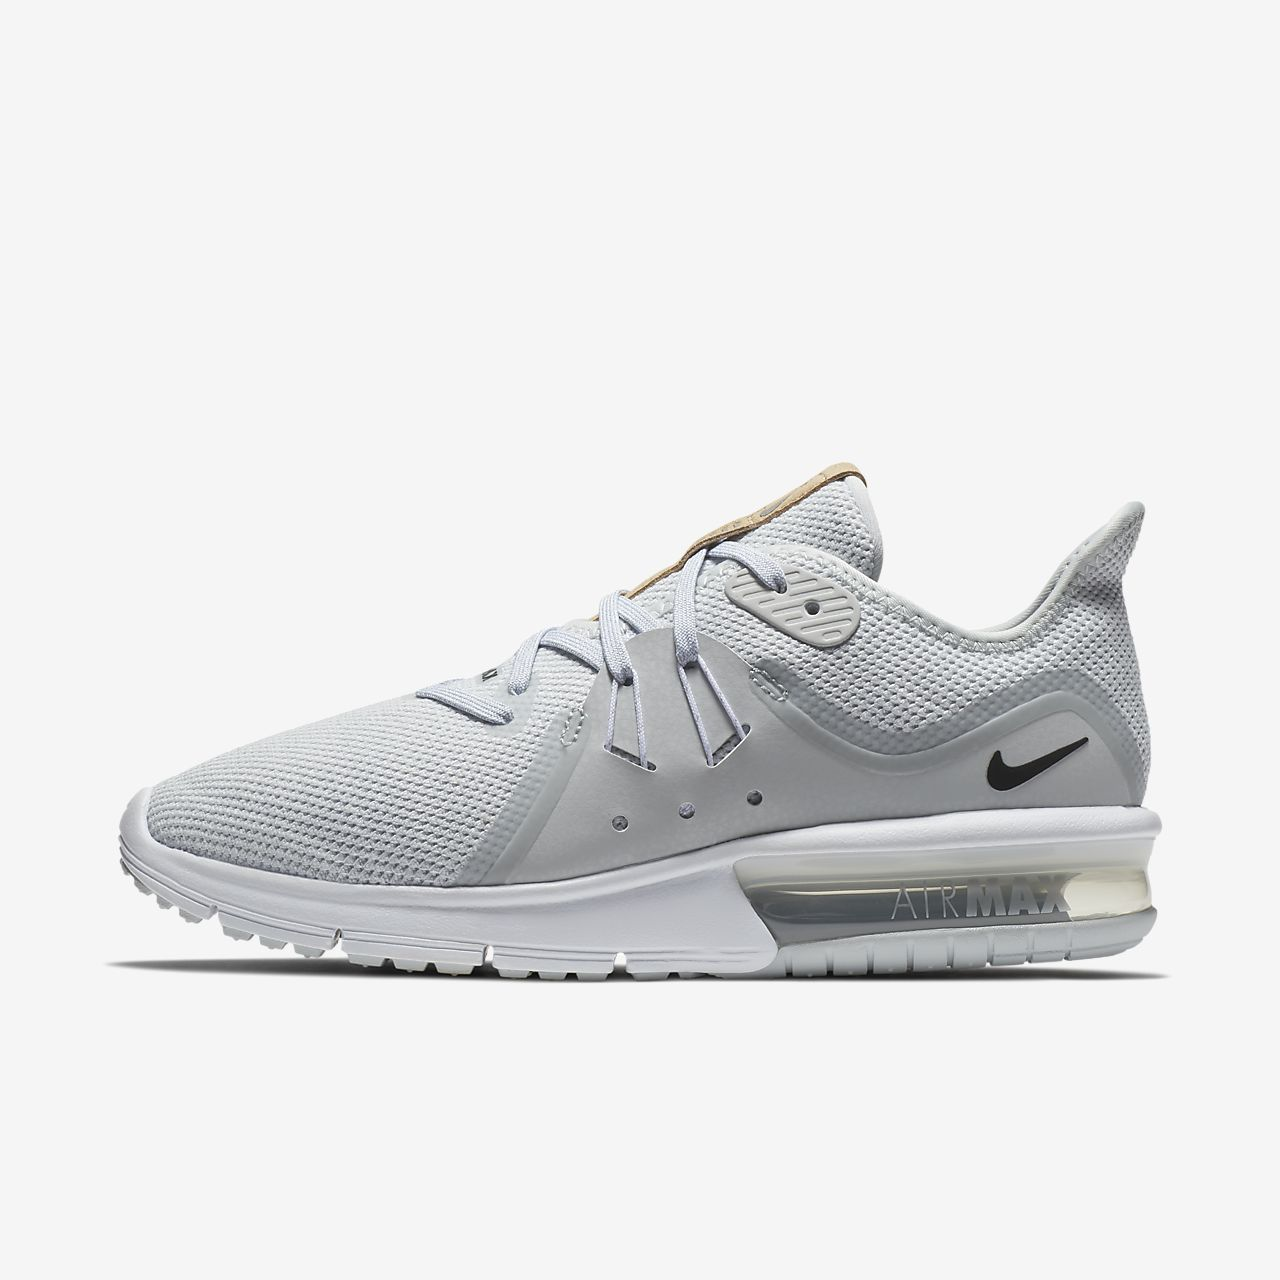 buy popular 38467 d6db5 ... Nike Air Max Sequent 3 Women s Shoe